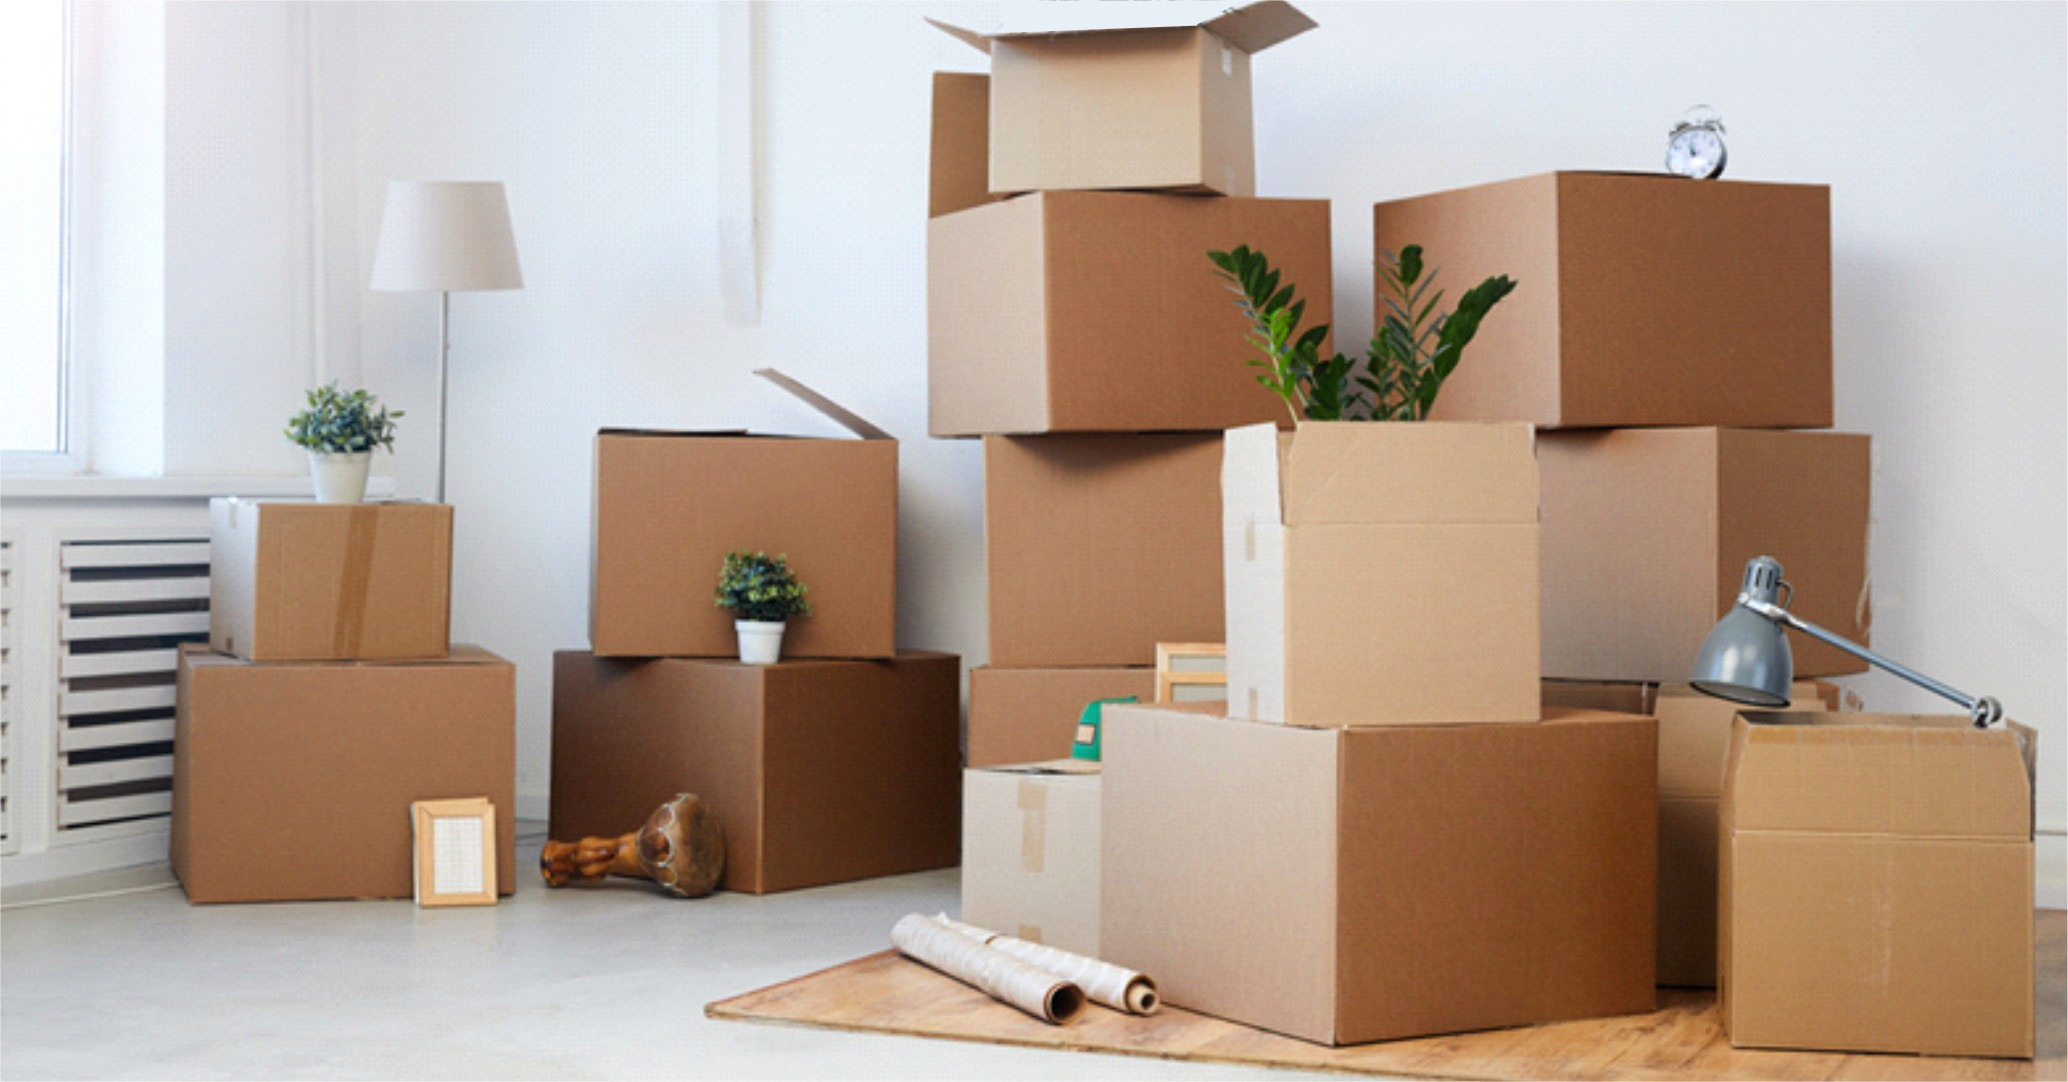 one-stop solution to move, store and retrieve